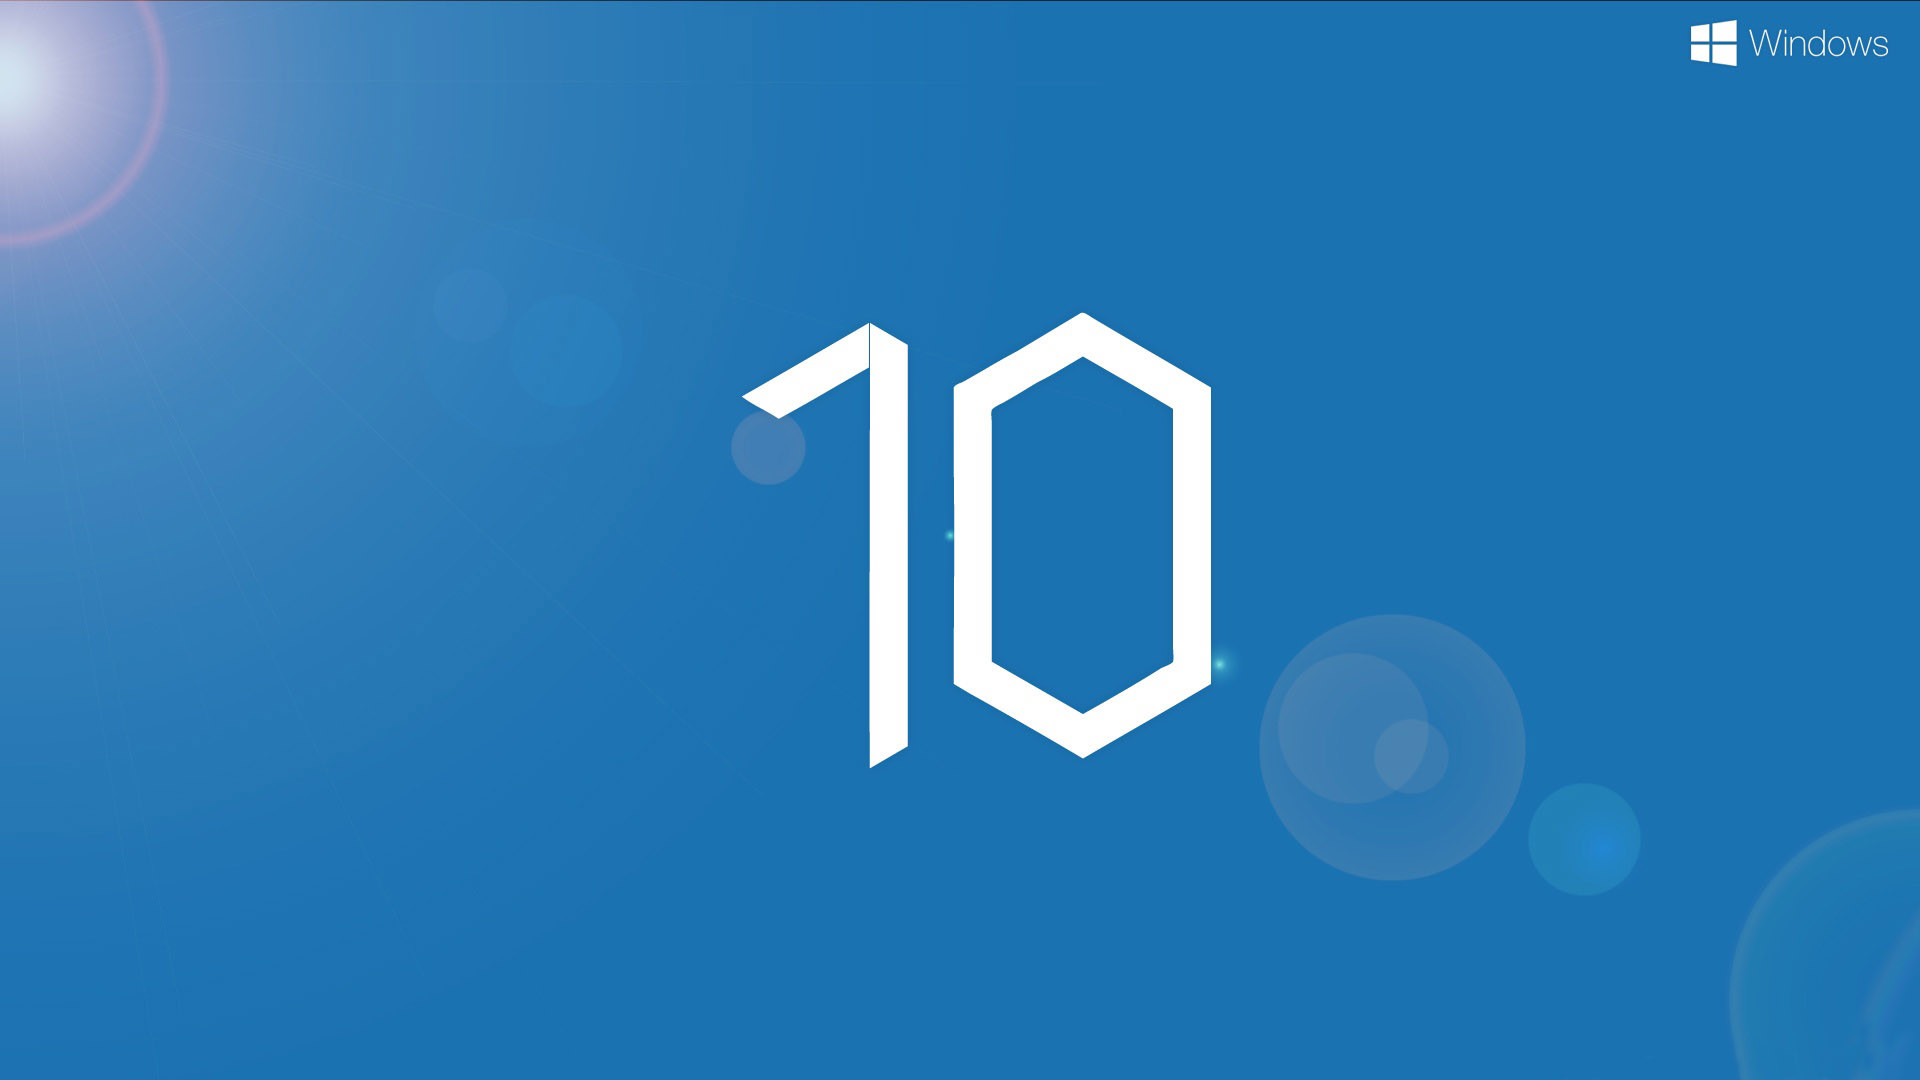 Preview wallpaper windows 10, windows, operational system, 2015 1920×1080